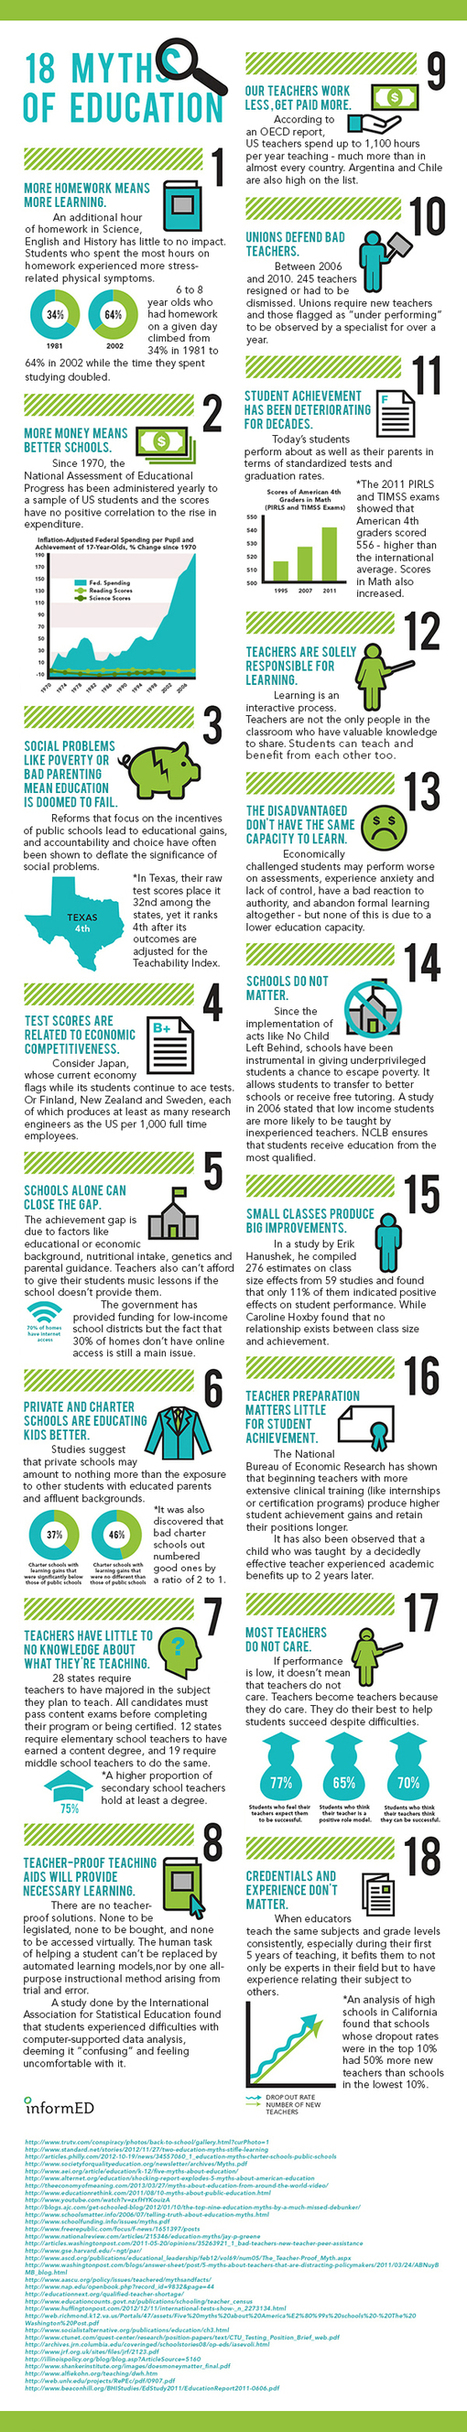 18 Myths People Believe About Education | Reputo Diversus | Scoop.it